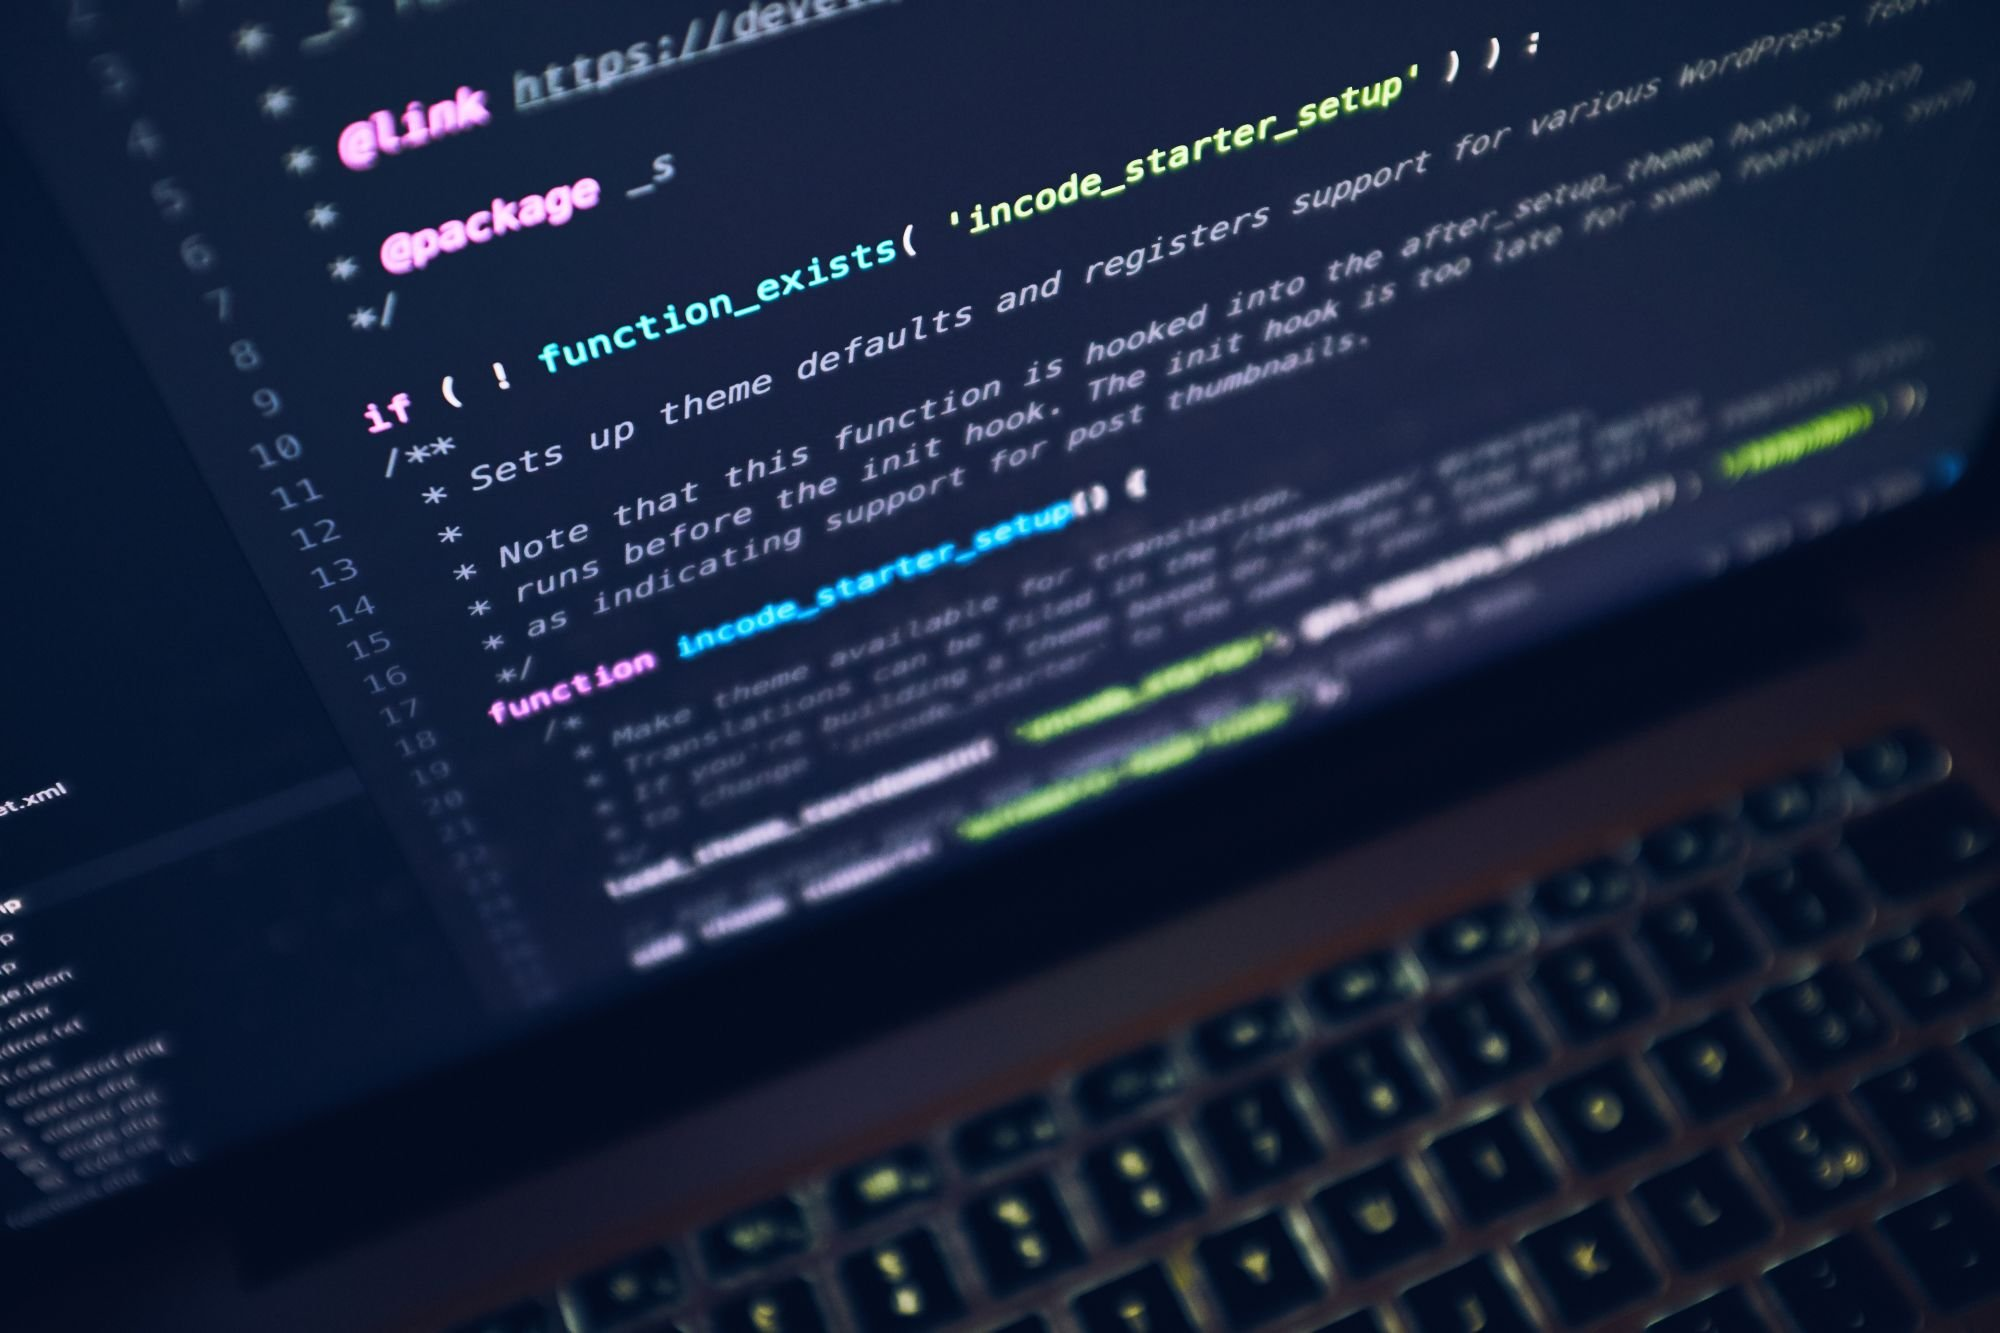 Programming Code Displayed On A Laptop Screen While Reviewing A Websites SEO